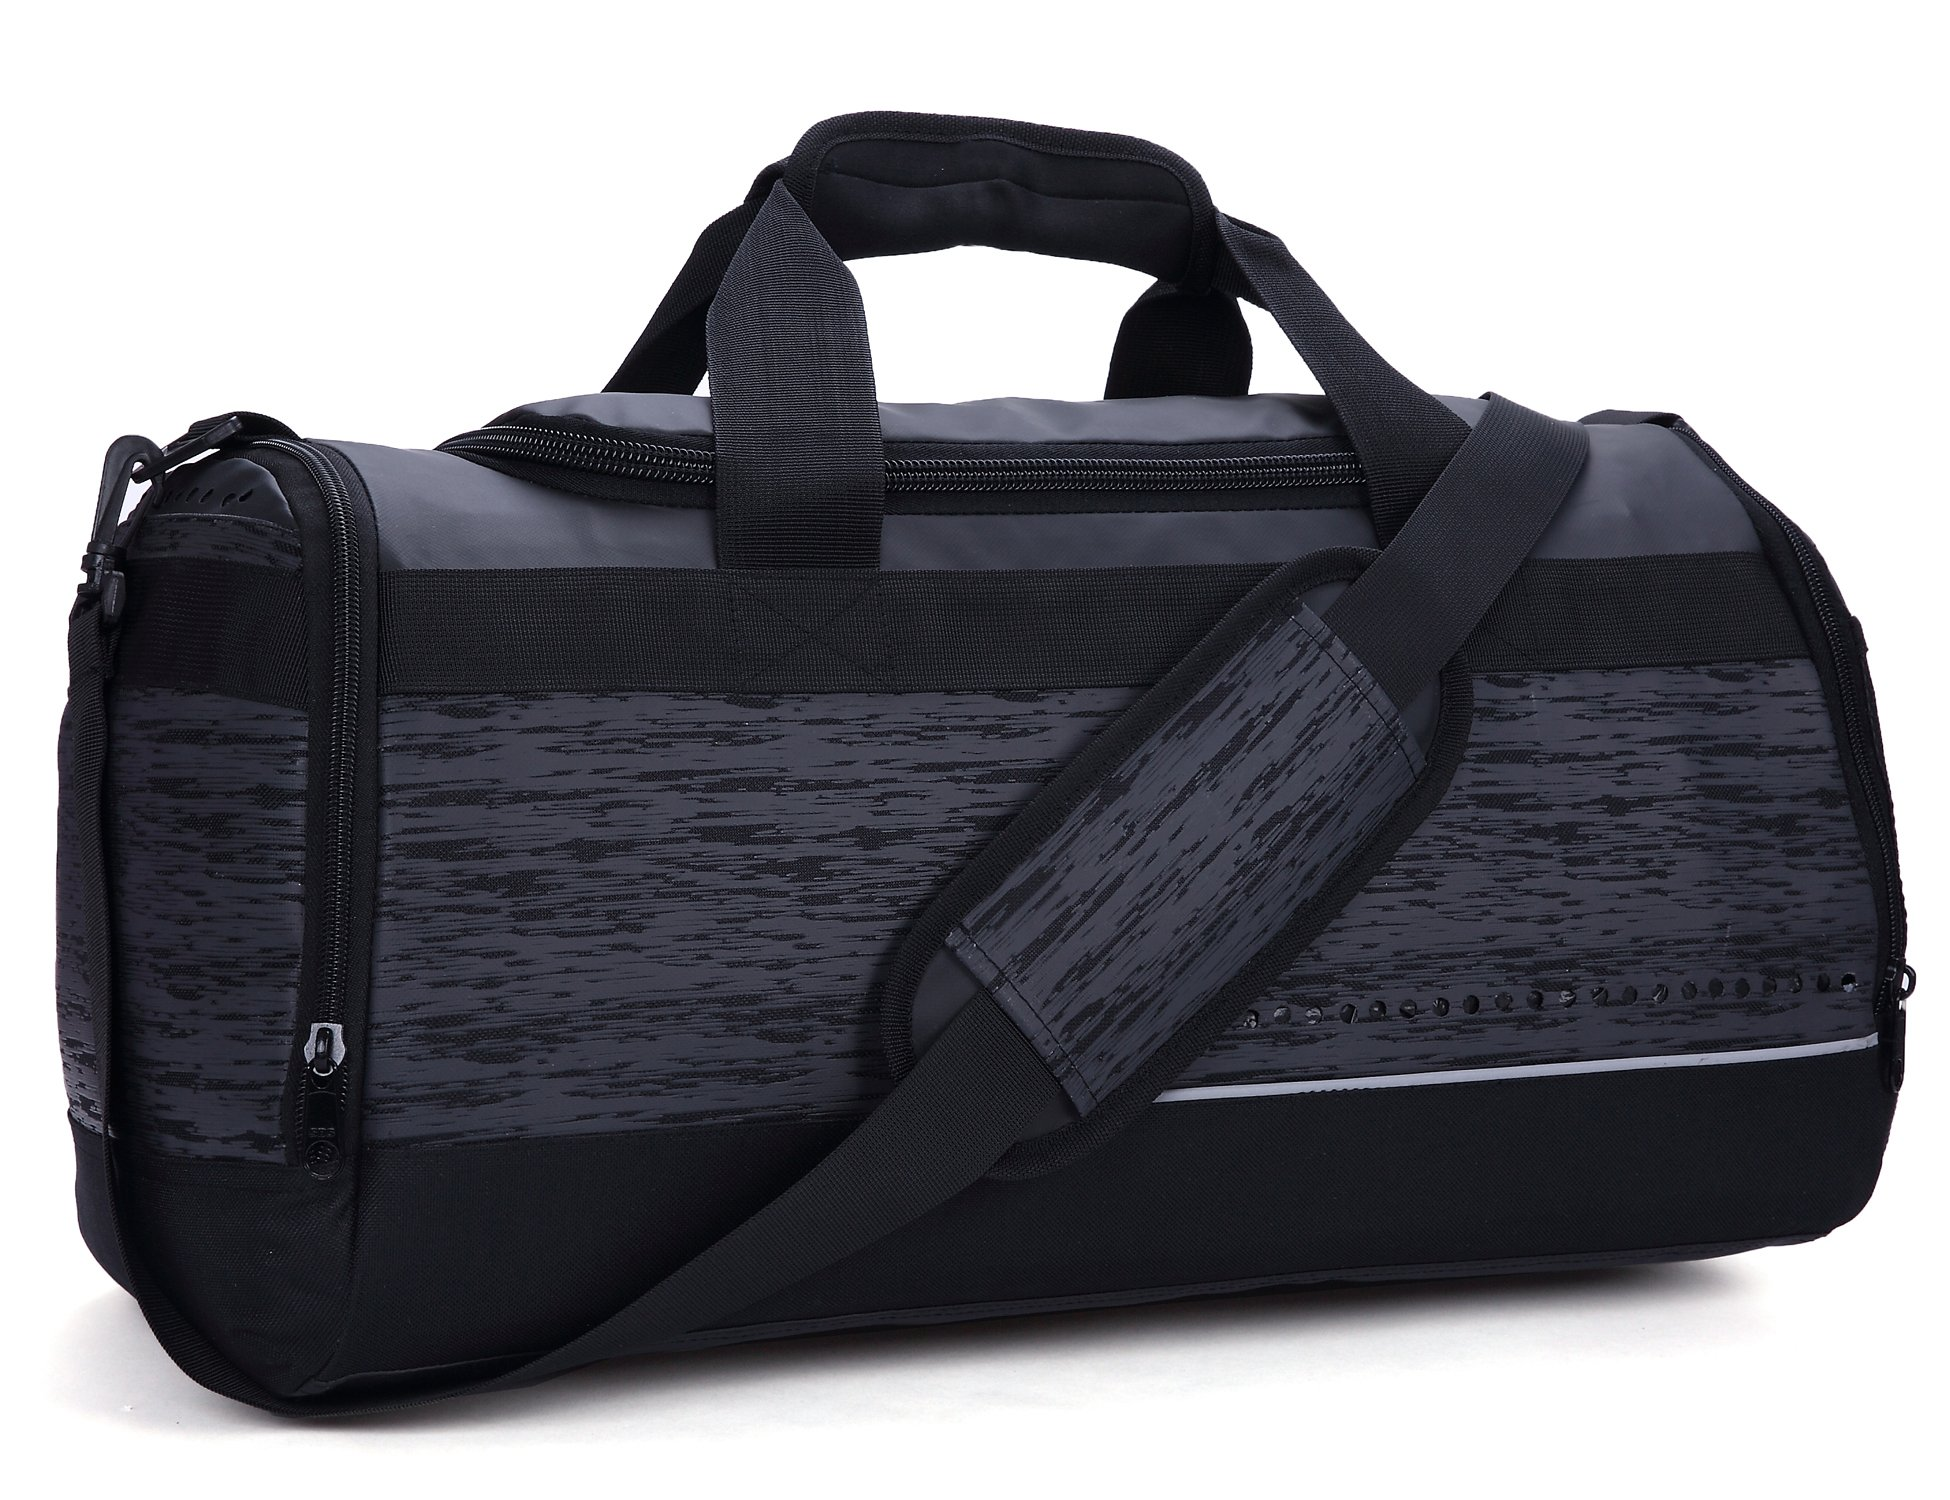 MIER 20 Inch Gym Bag with Shoe Compartment Men Duffel Bag, Medium, Black